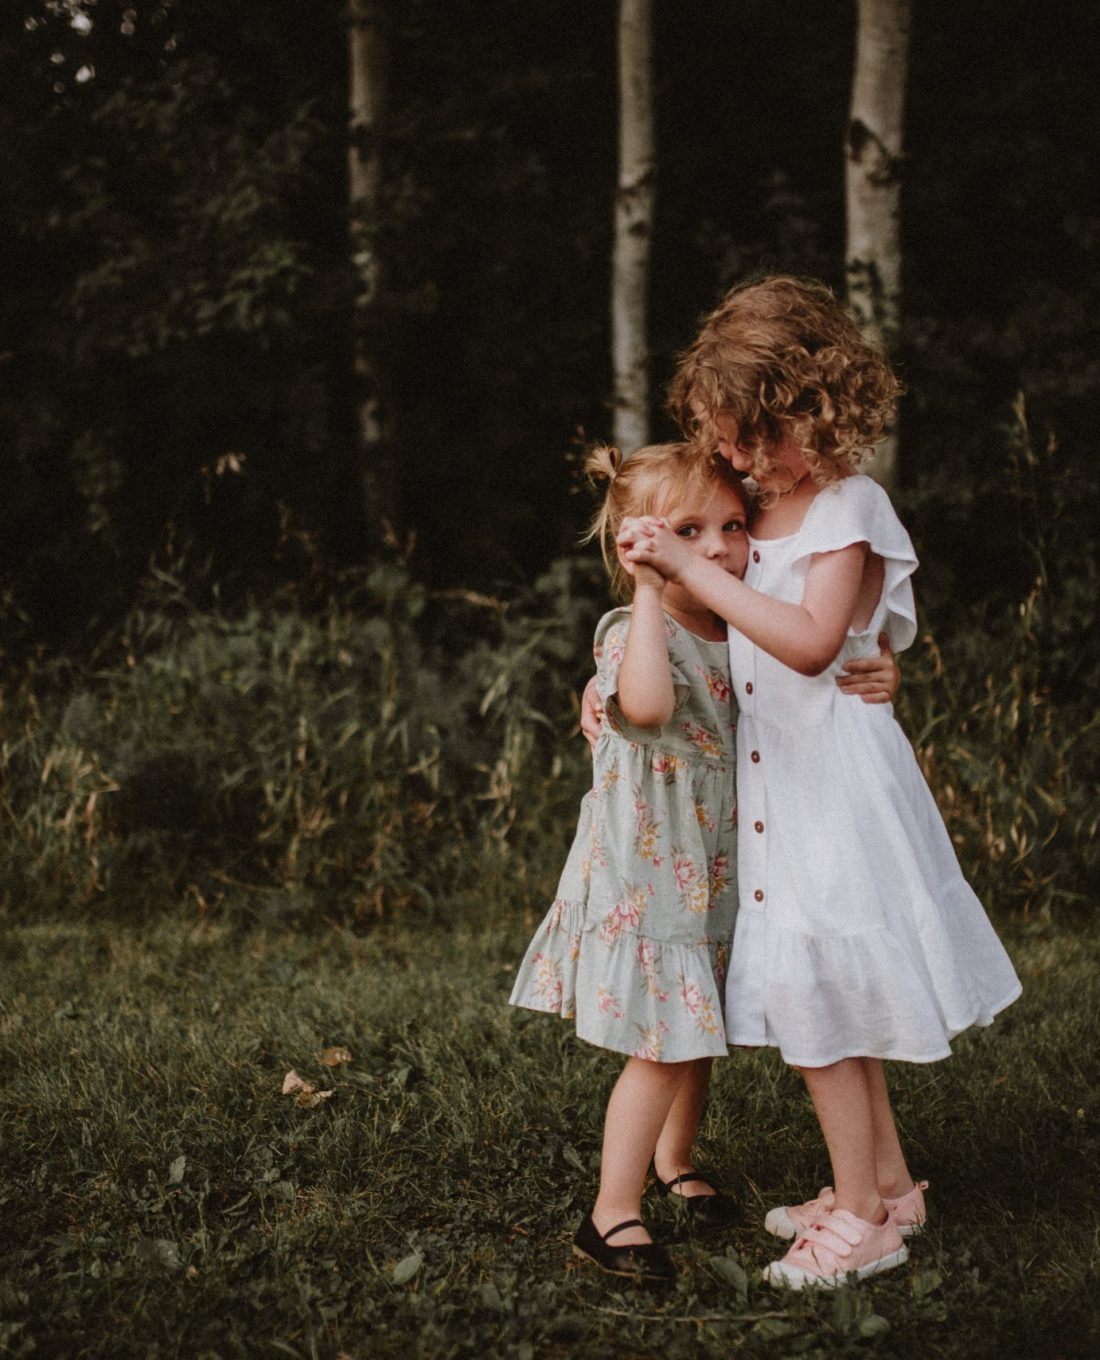 little sisters dancing together in the forest